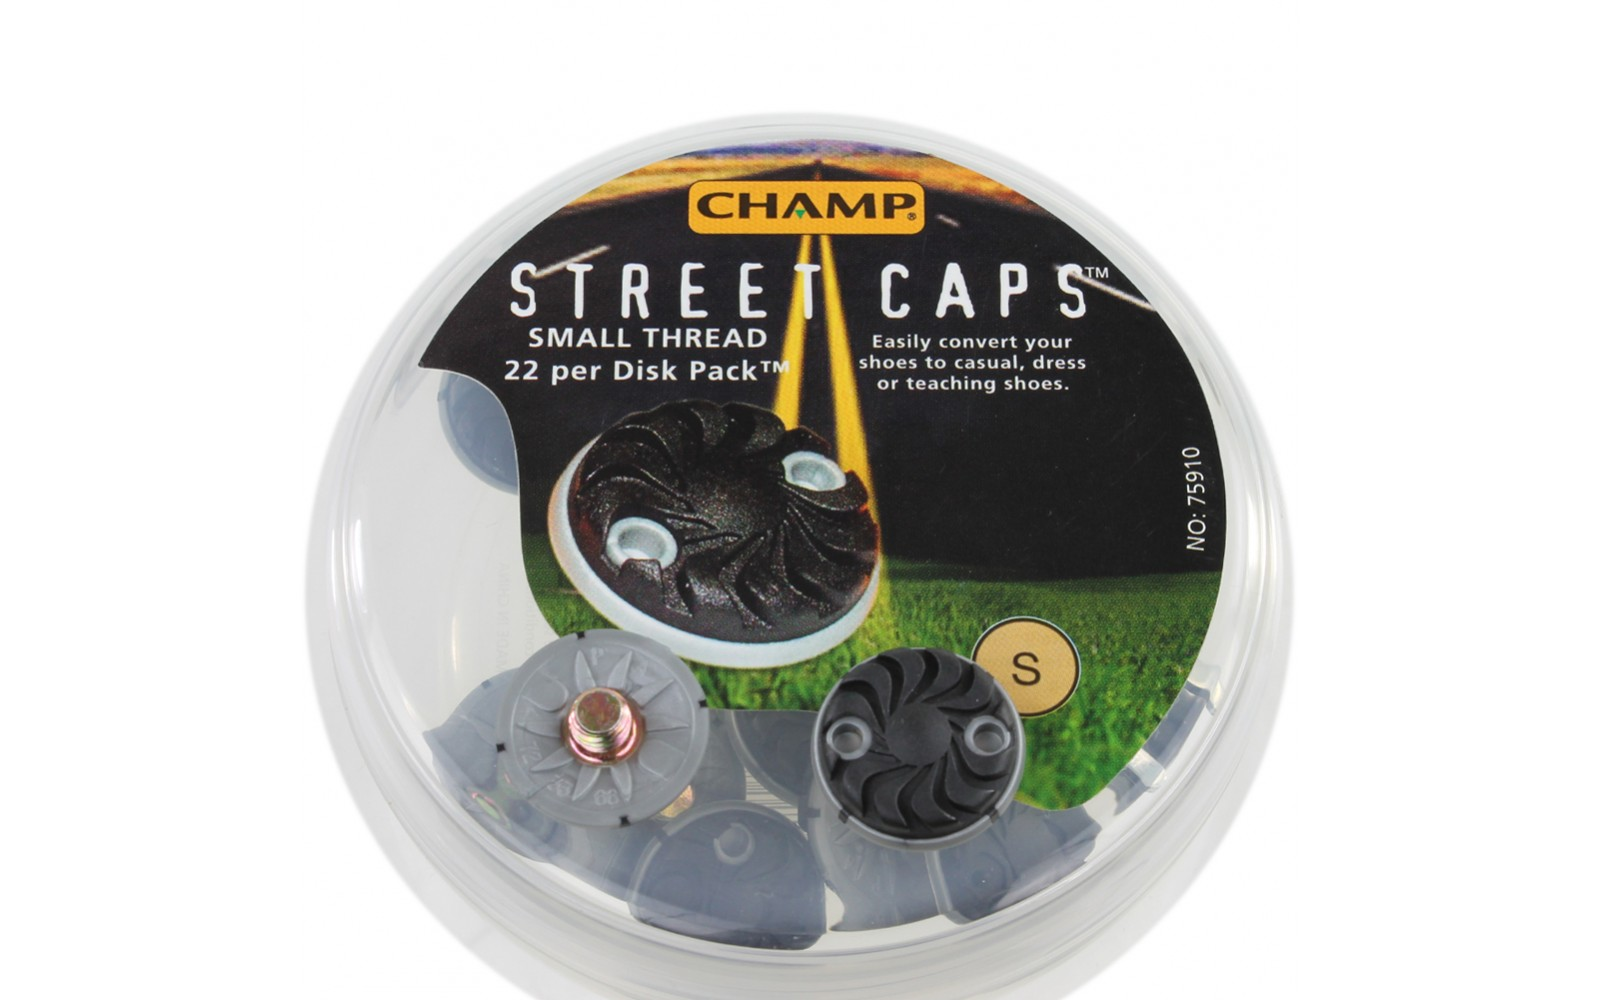 Champ StreetCaps Spikes Disk